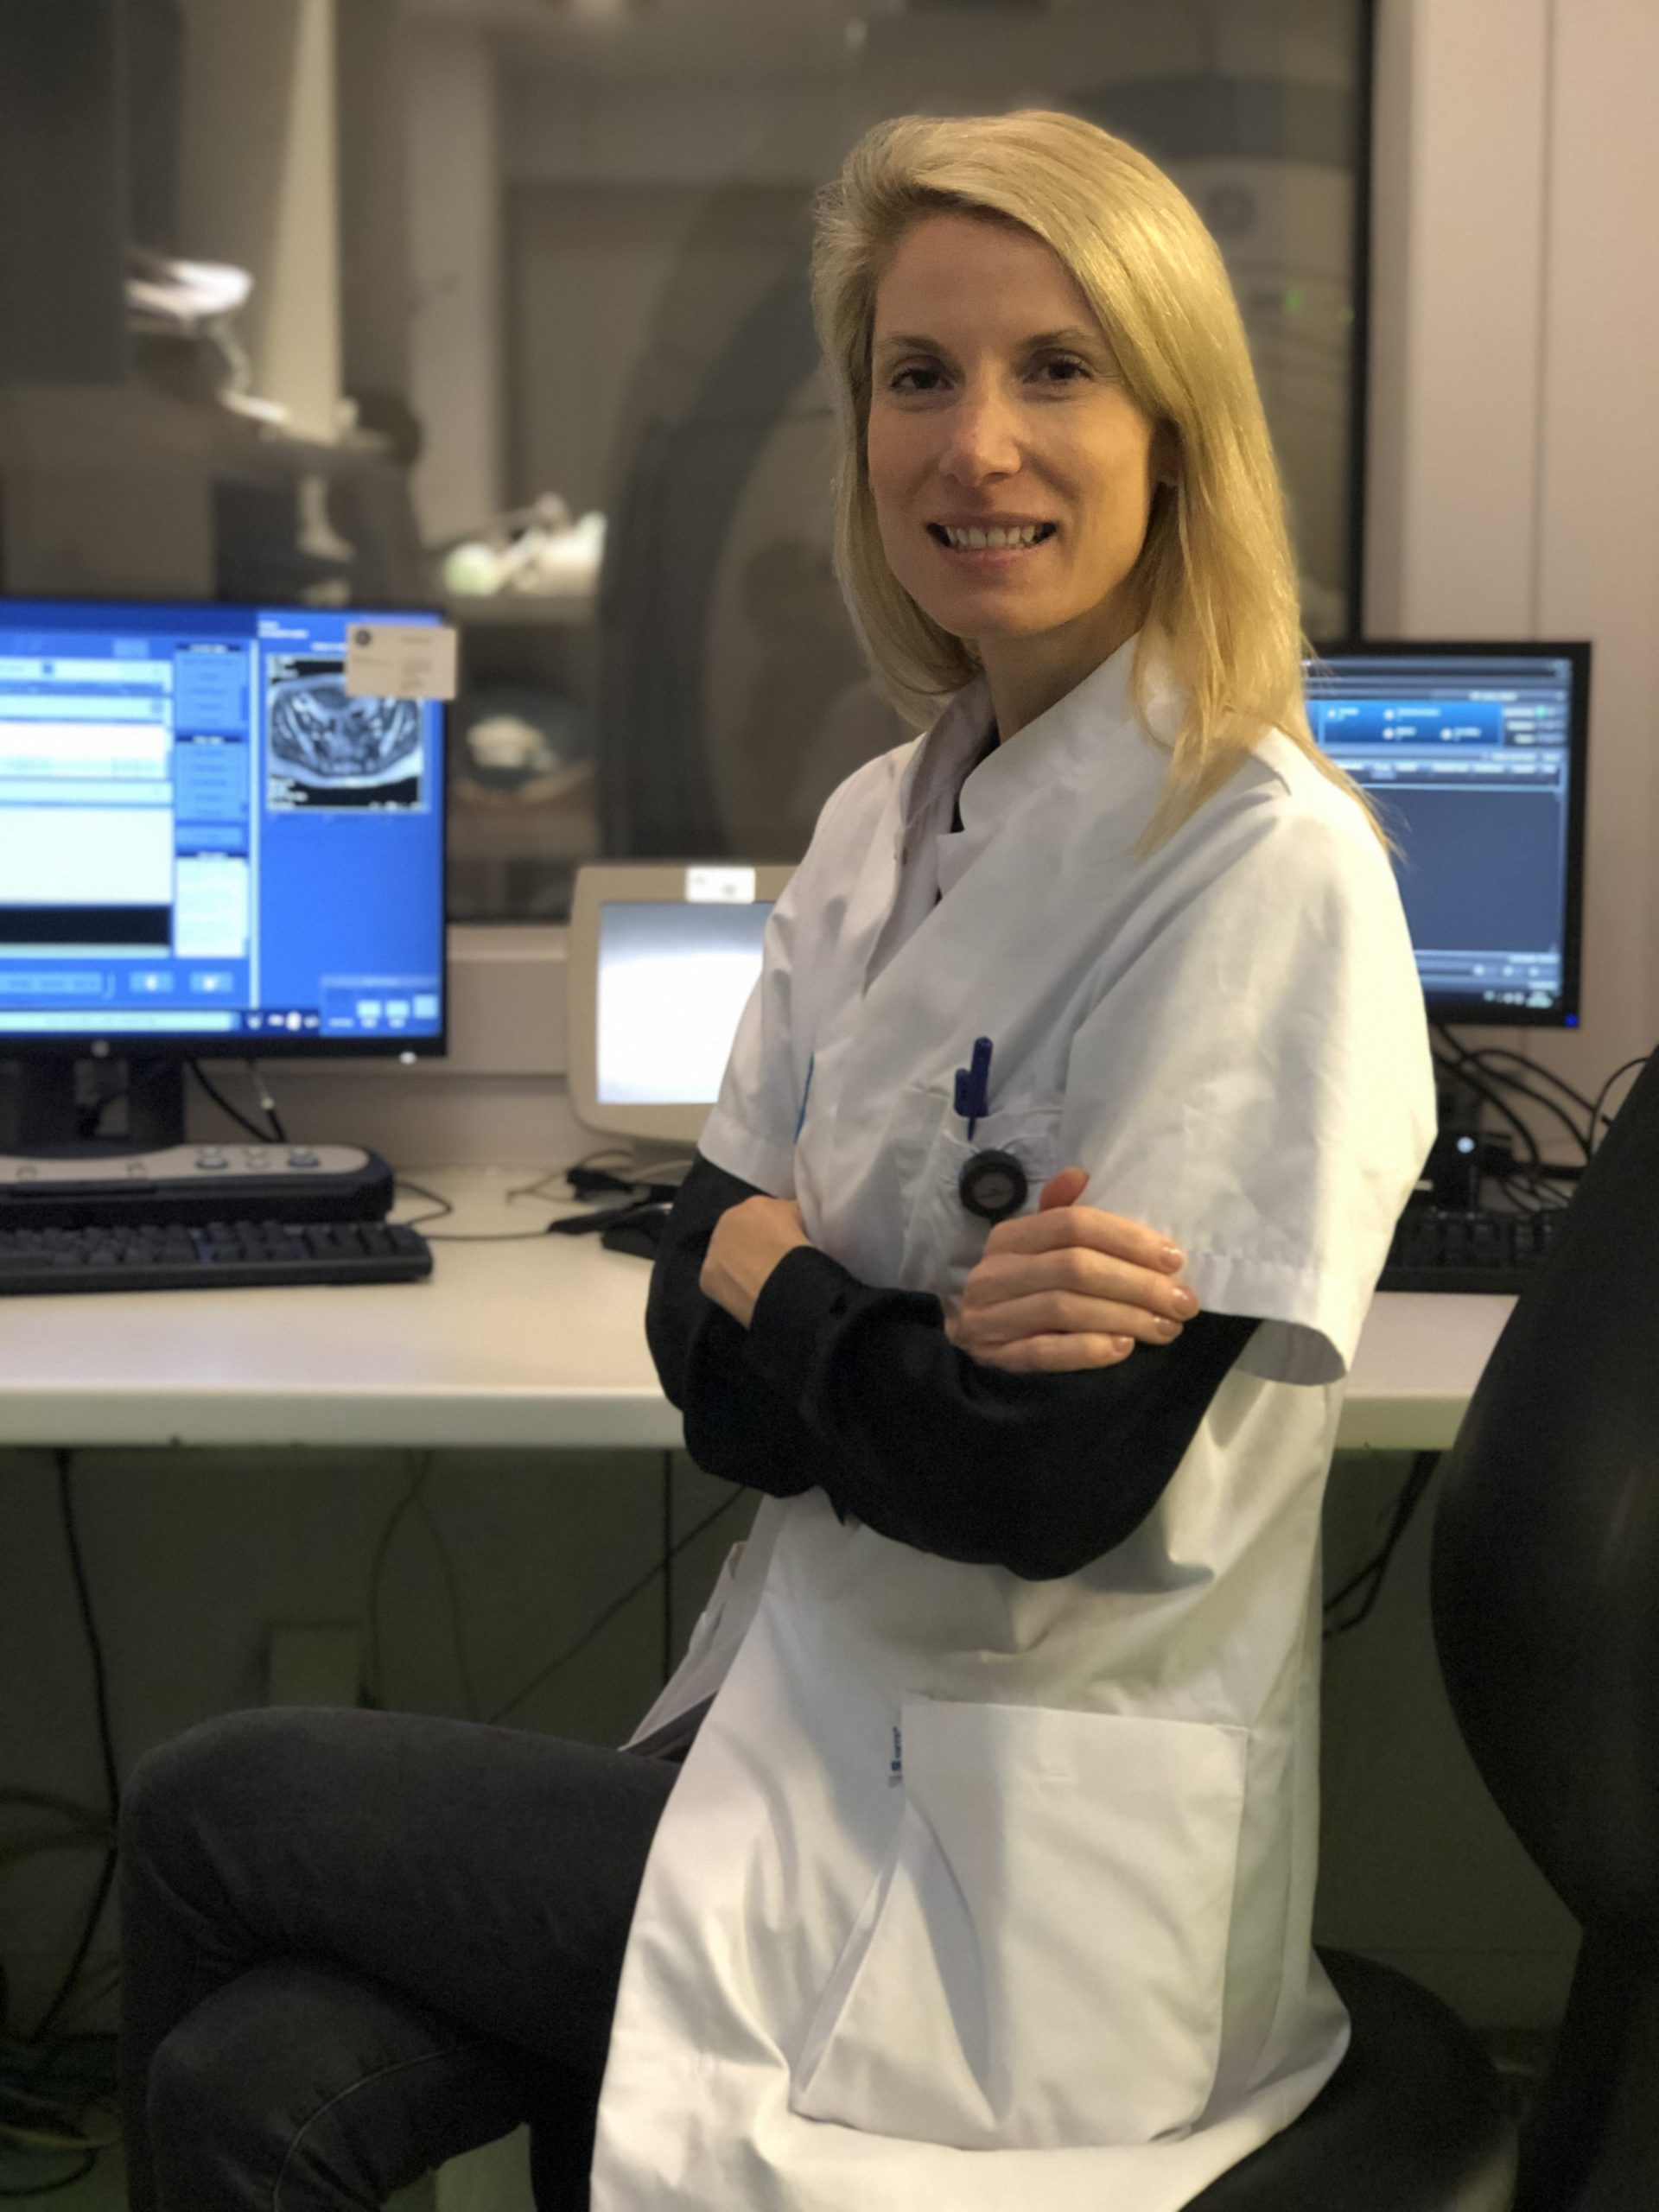 Interview with radiologist, MD, Valerie Cassetto